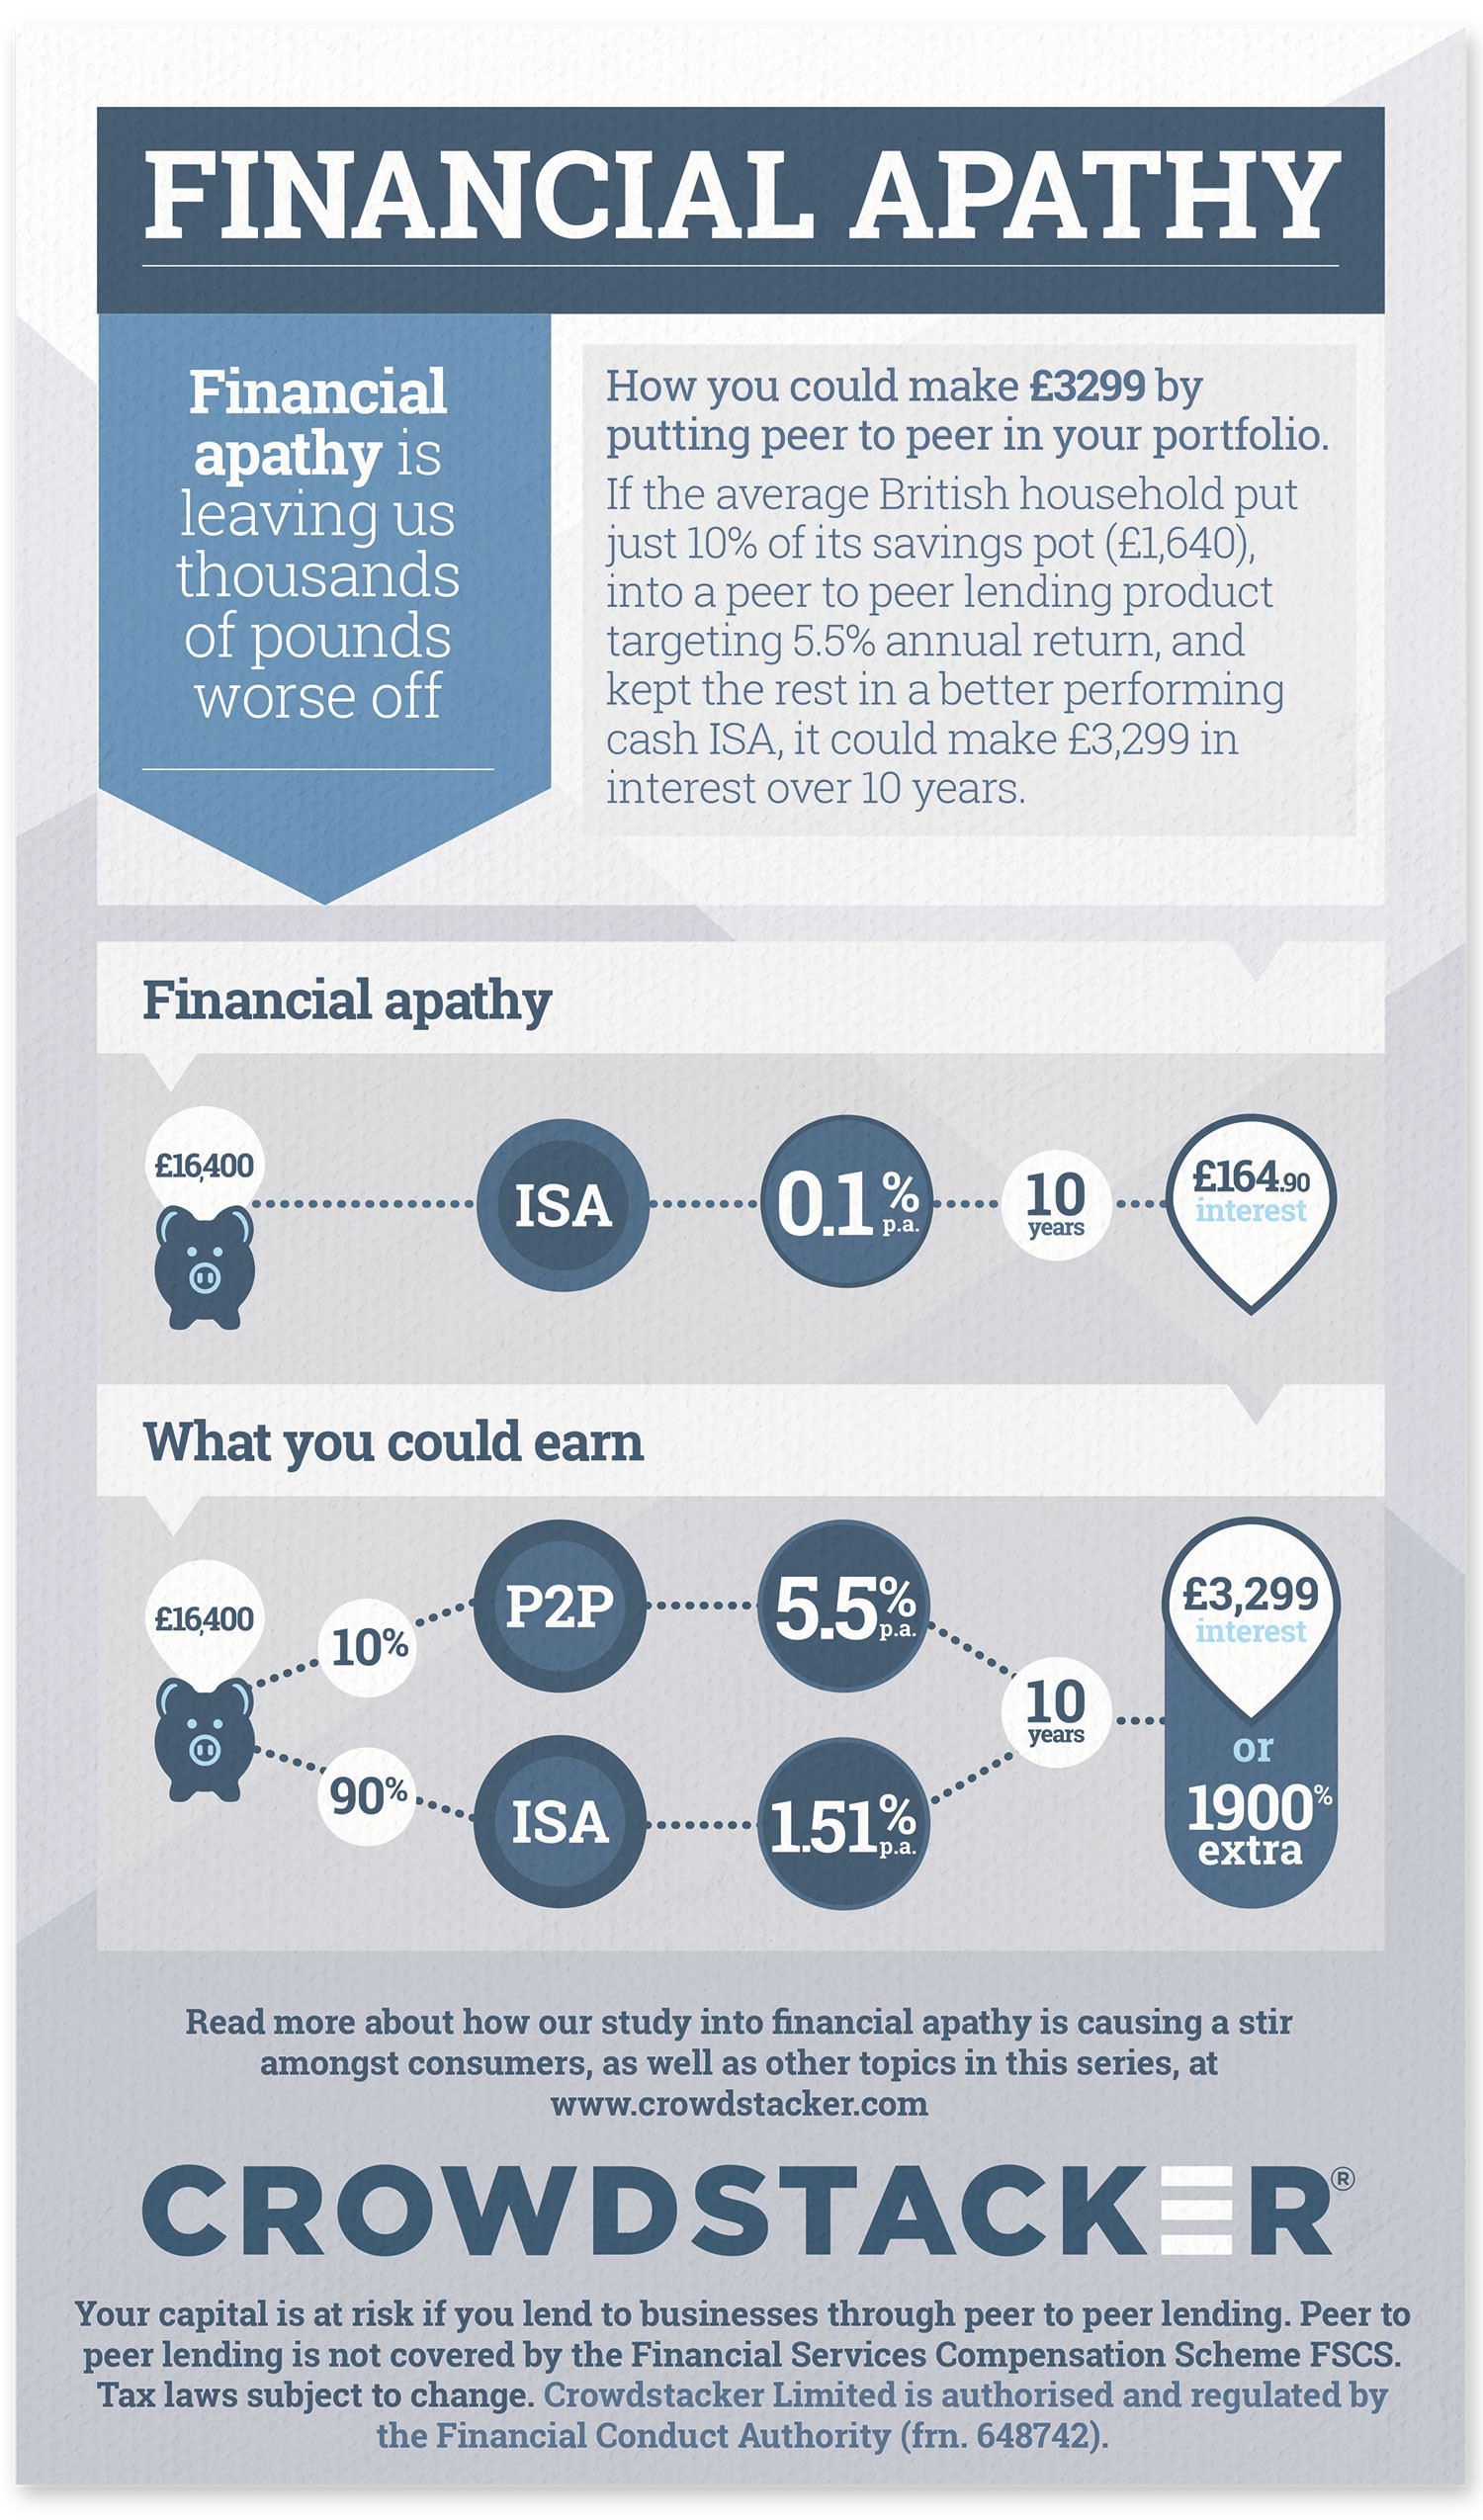 How you could make £3299 by putting P2P in your portfolio Infographic